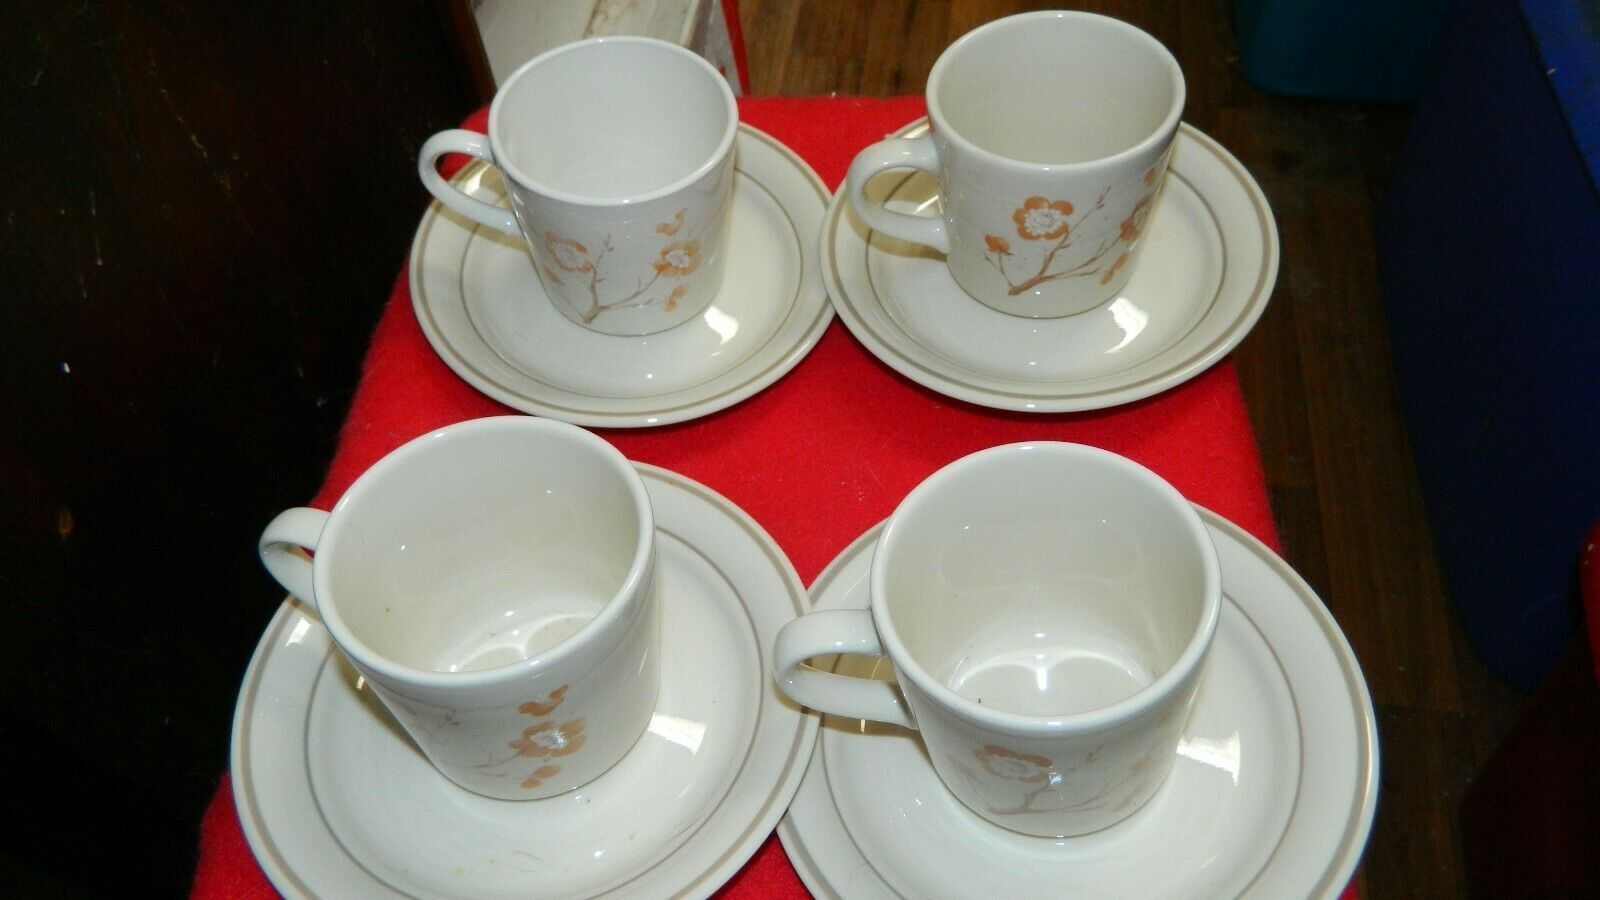 Primary image for CORELLE CHINA BLOSSOM CUP & SAUCER  4 OF EACH  8 TOTAL PIECES FREE USA SHIPPING